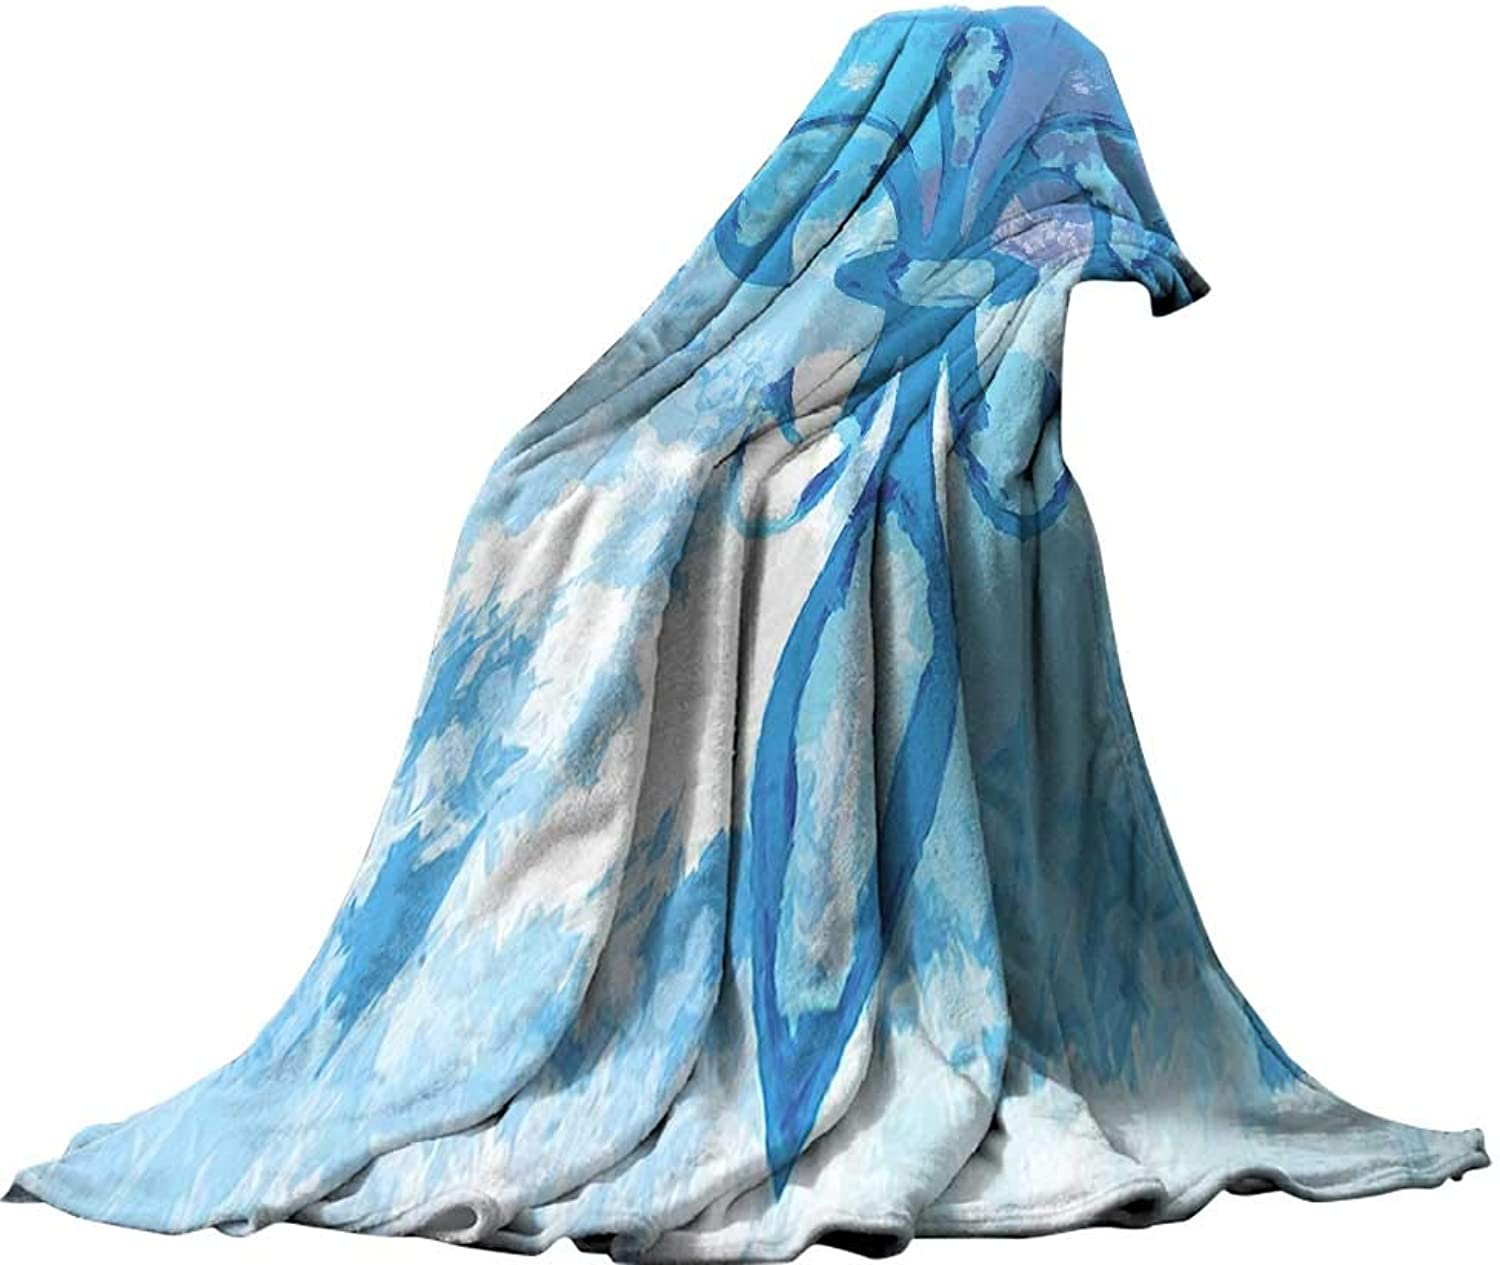 QINYAN-Home Super Soft Blanket (80 x60 ) Oversized Travel Throw Cover Blanket Fleur De Lis Decor Illustration of Lily Flower Like Frozen Heredic Nobility Emblem Queenly Style Print bluee.